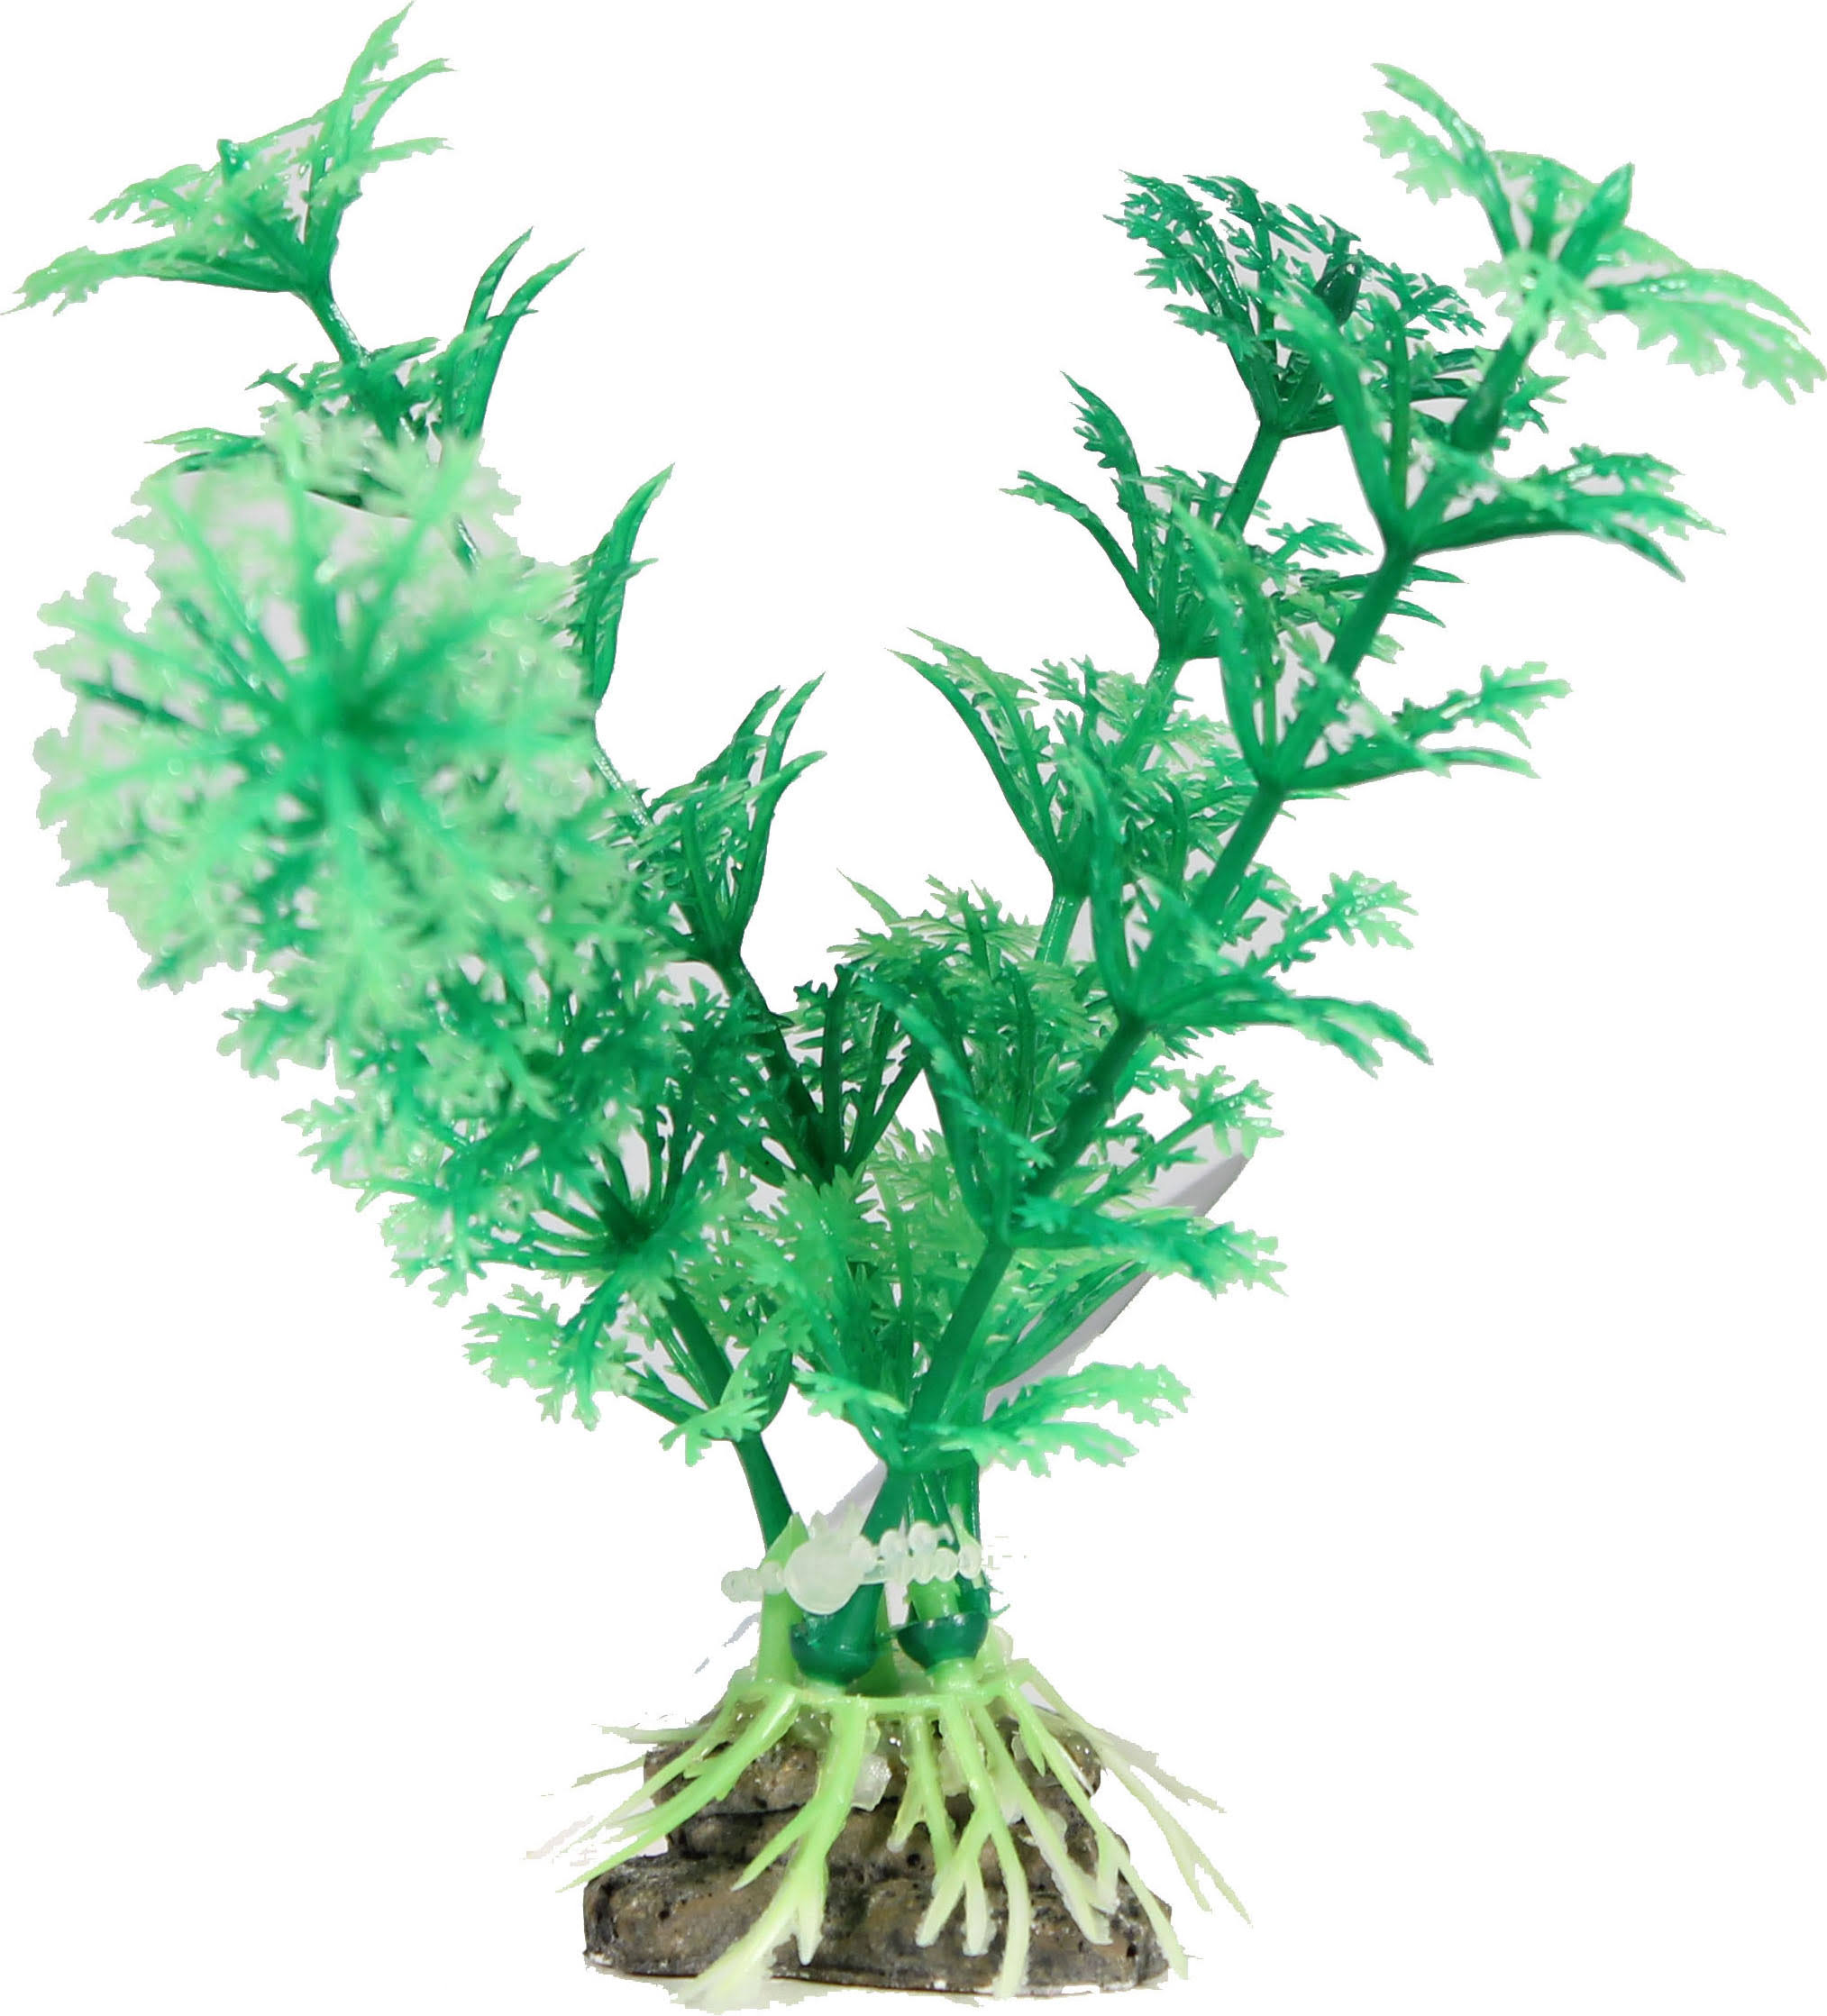 Elive Natural Elements Cabomba Plant Green 4 inch